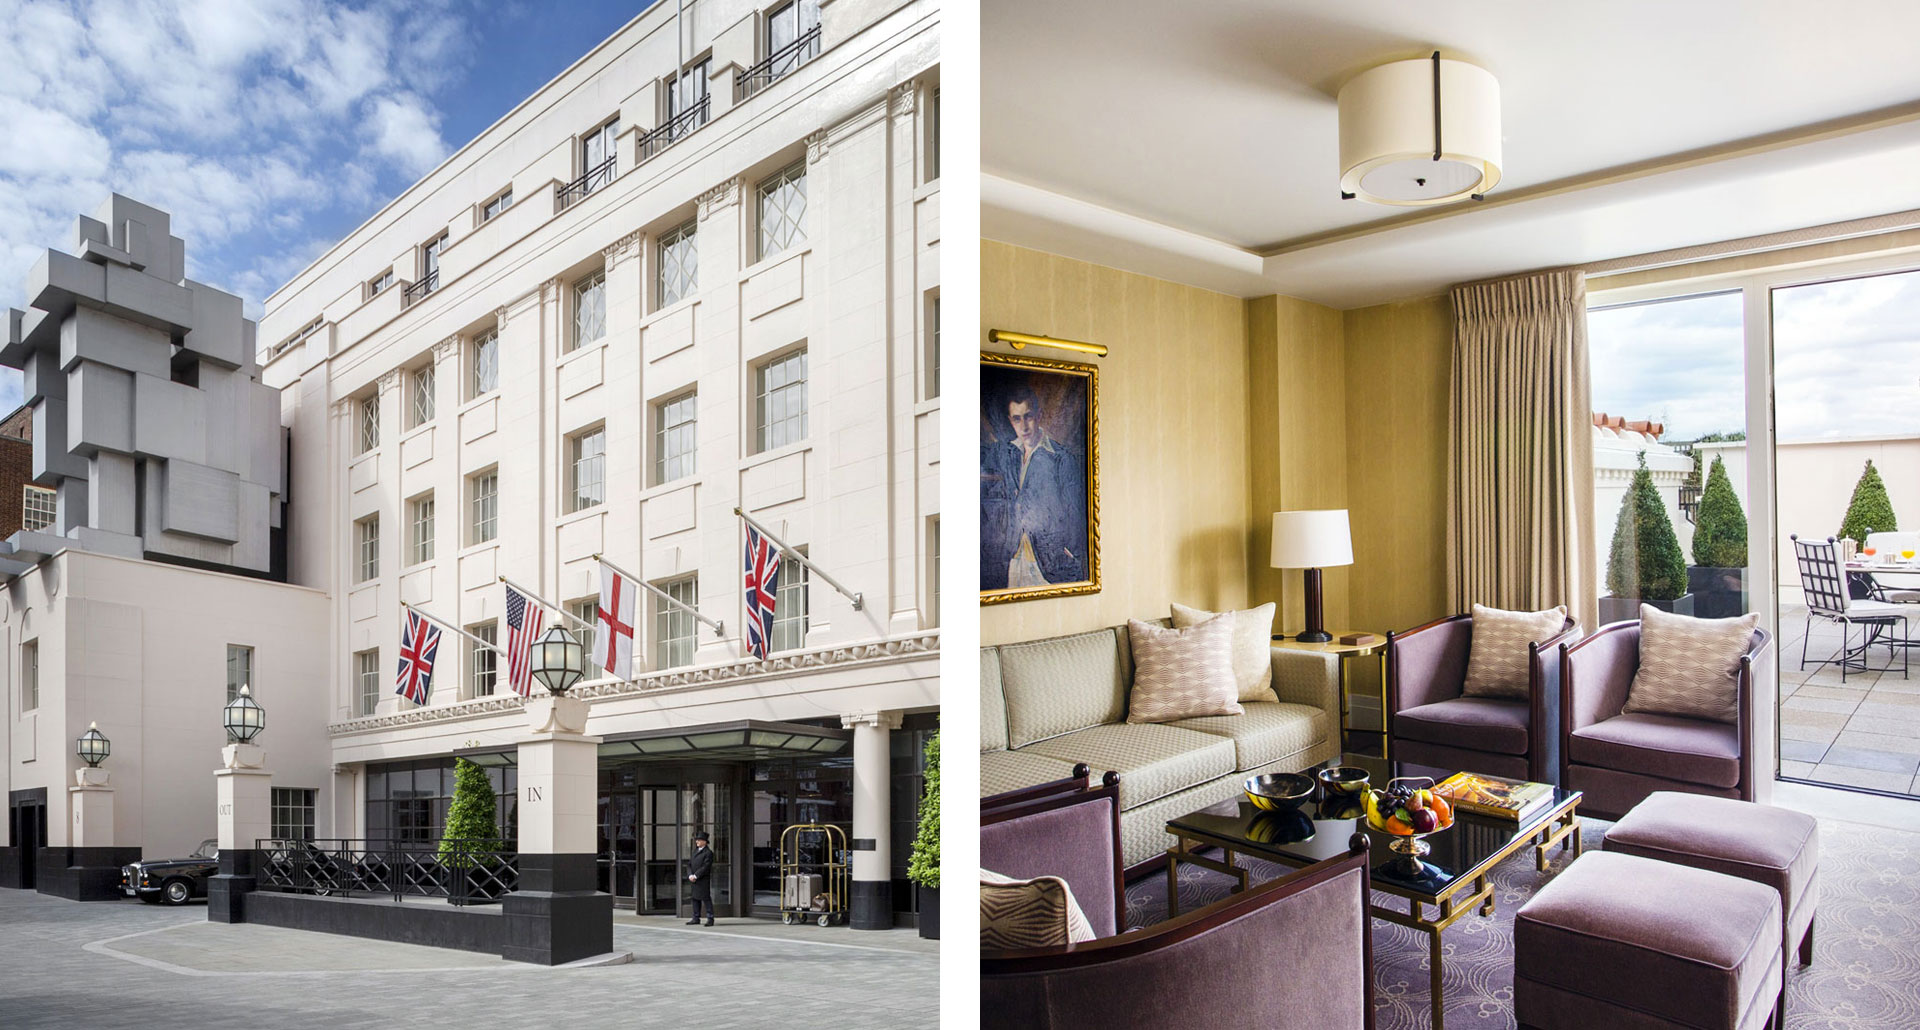 The Beaumont Hotel - boutique hotel in London